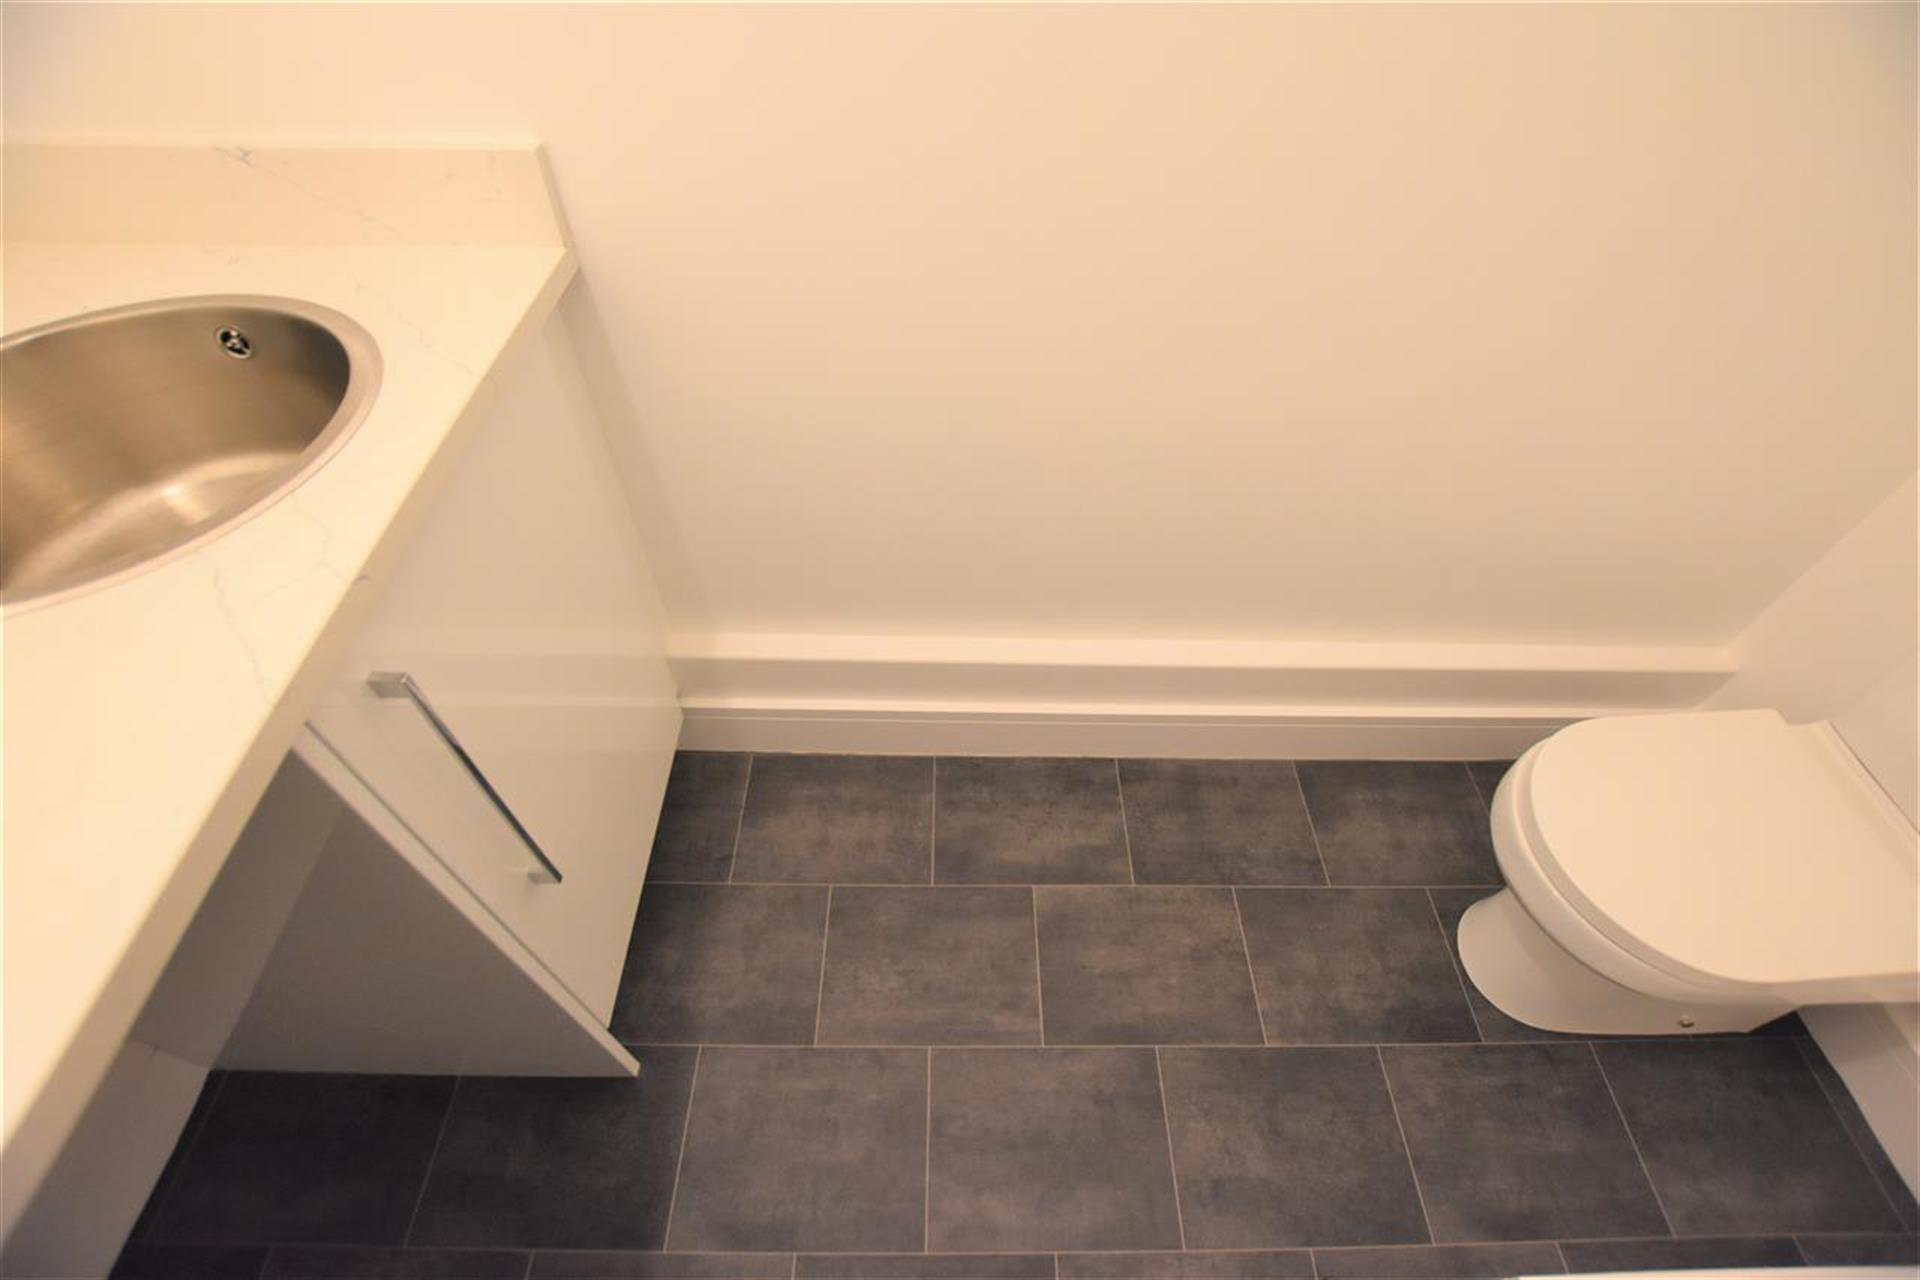 3 Bedroom House For Sale - WC/Utility Room